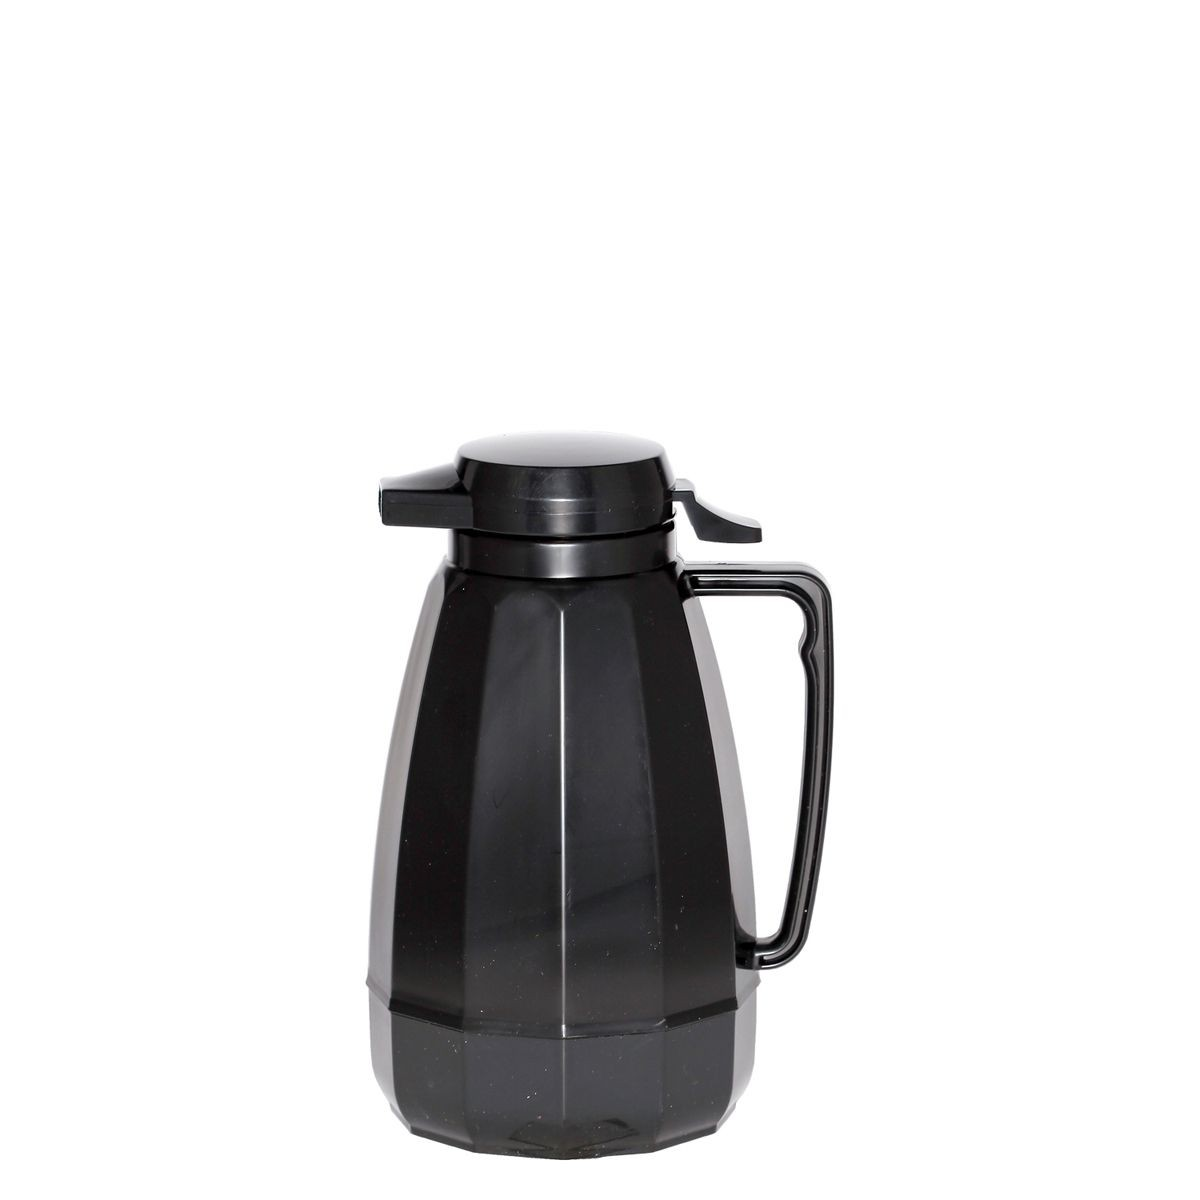 Service Ideas NG101BL New Generation Black Coffee Server, 1 Liter (34 oz.)